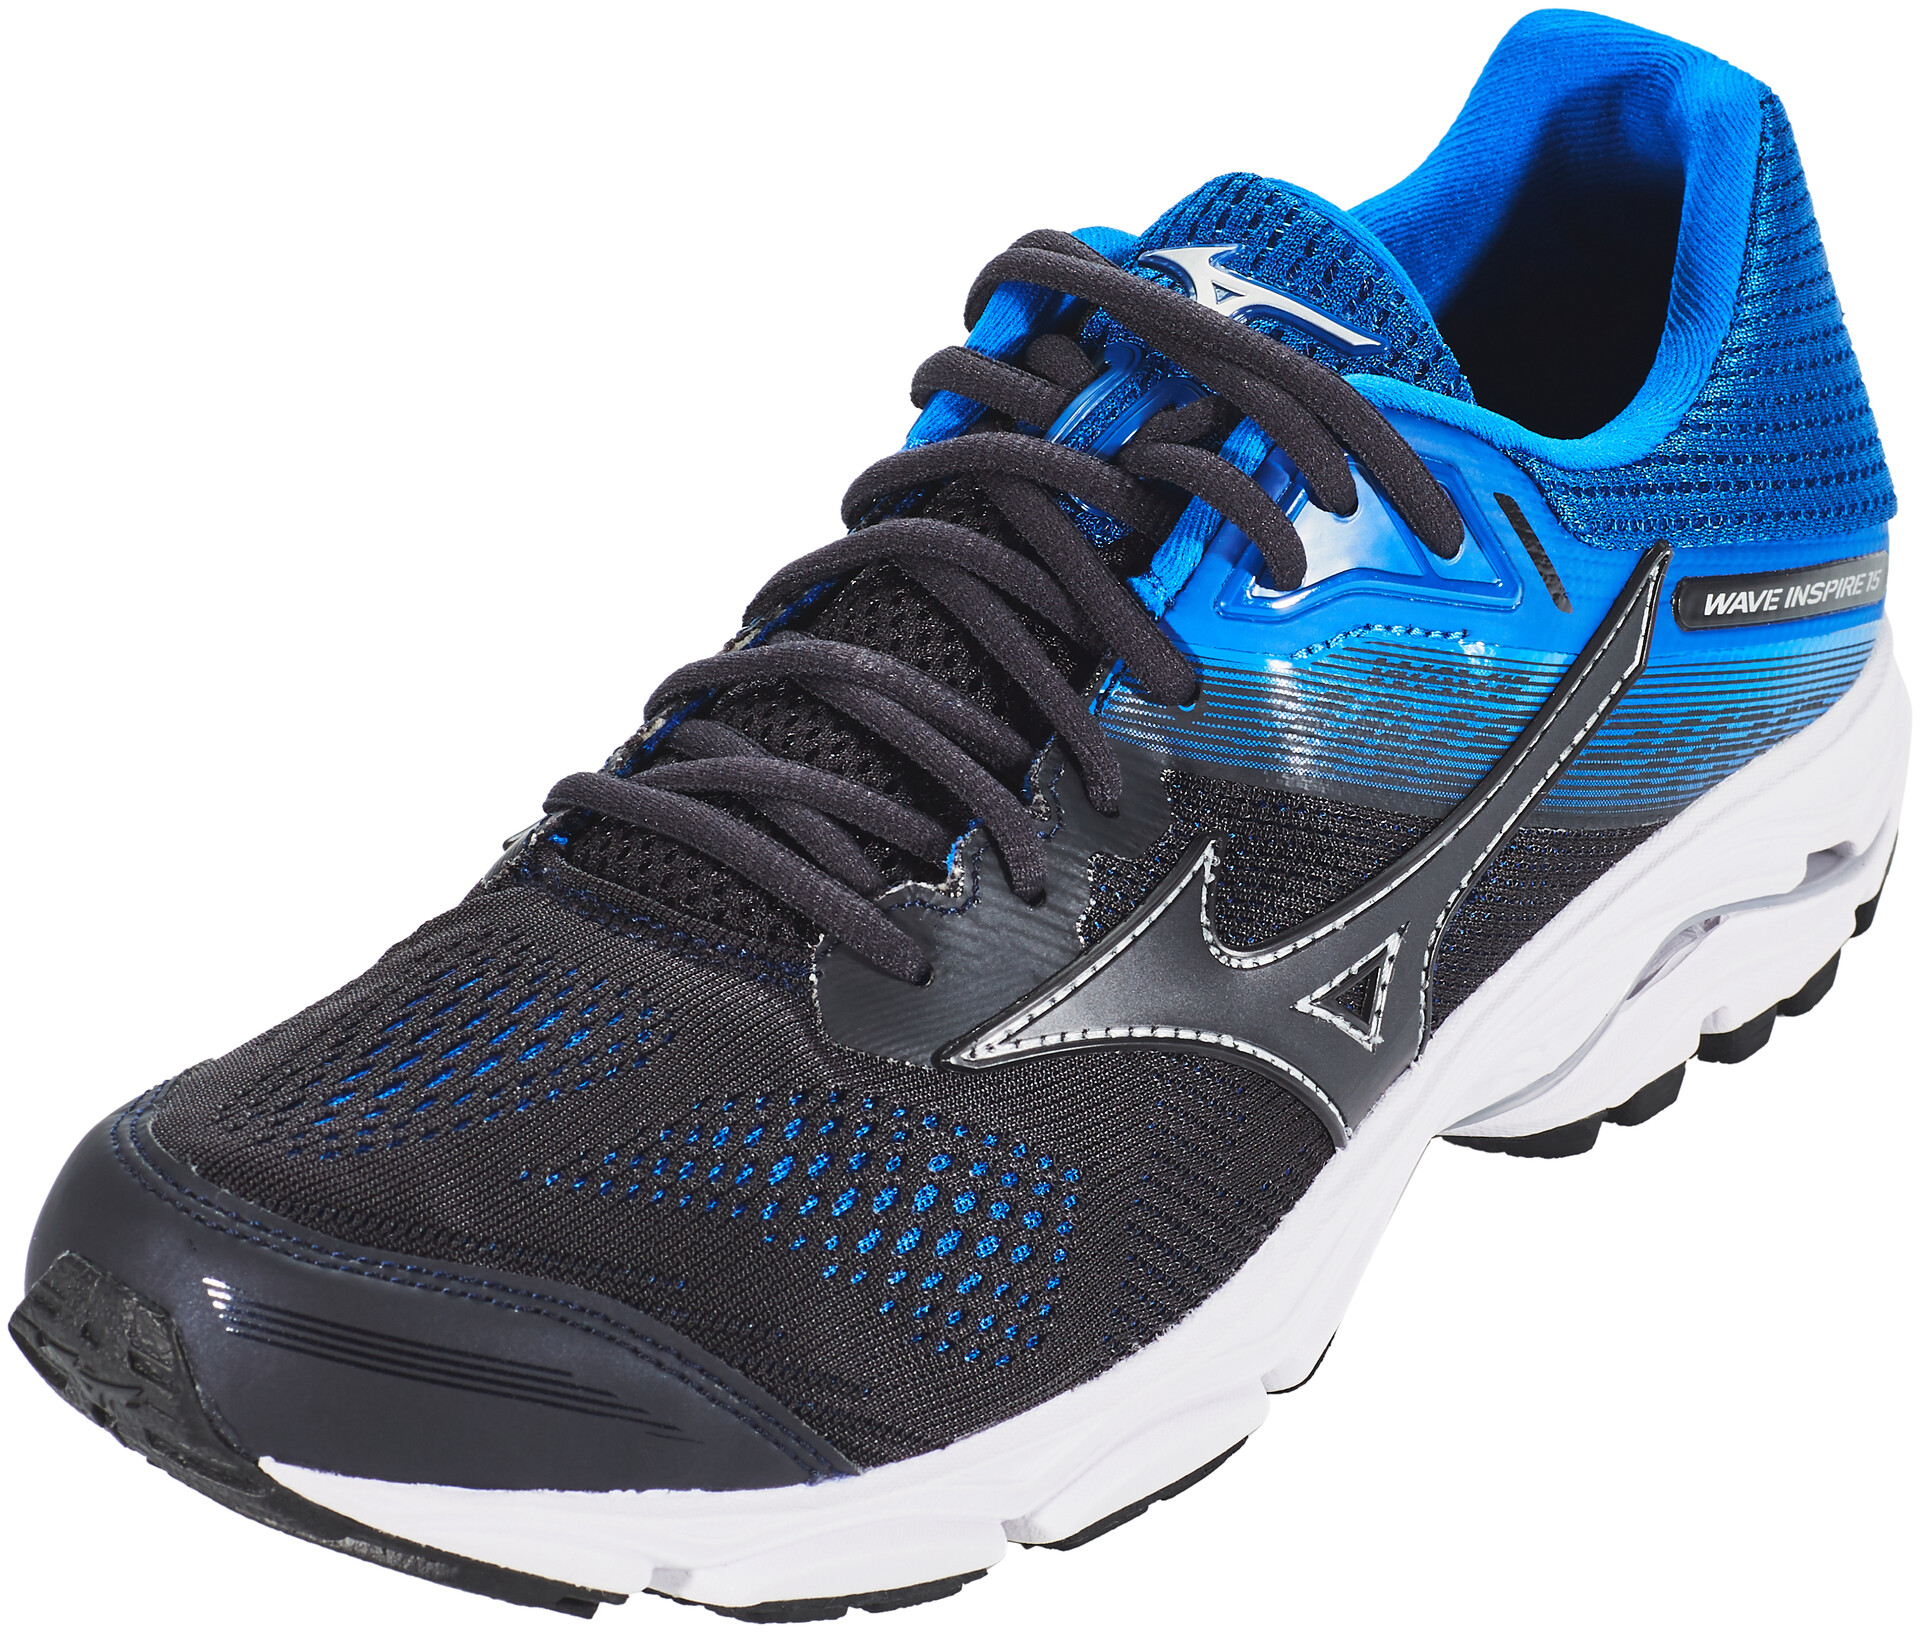 blue 15 Wave blue Inspire graphiteblue Running Shoes Mizuno graphitesnorkel Men byfg67